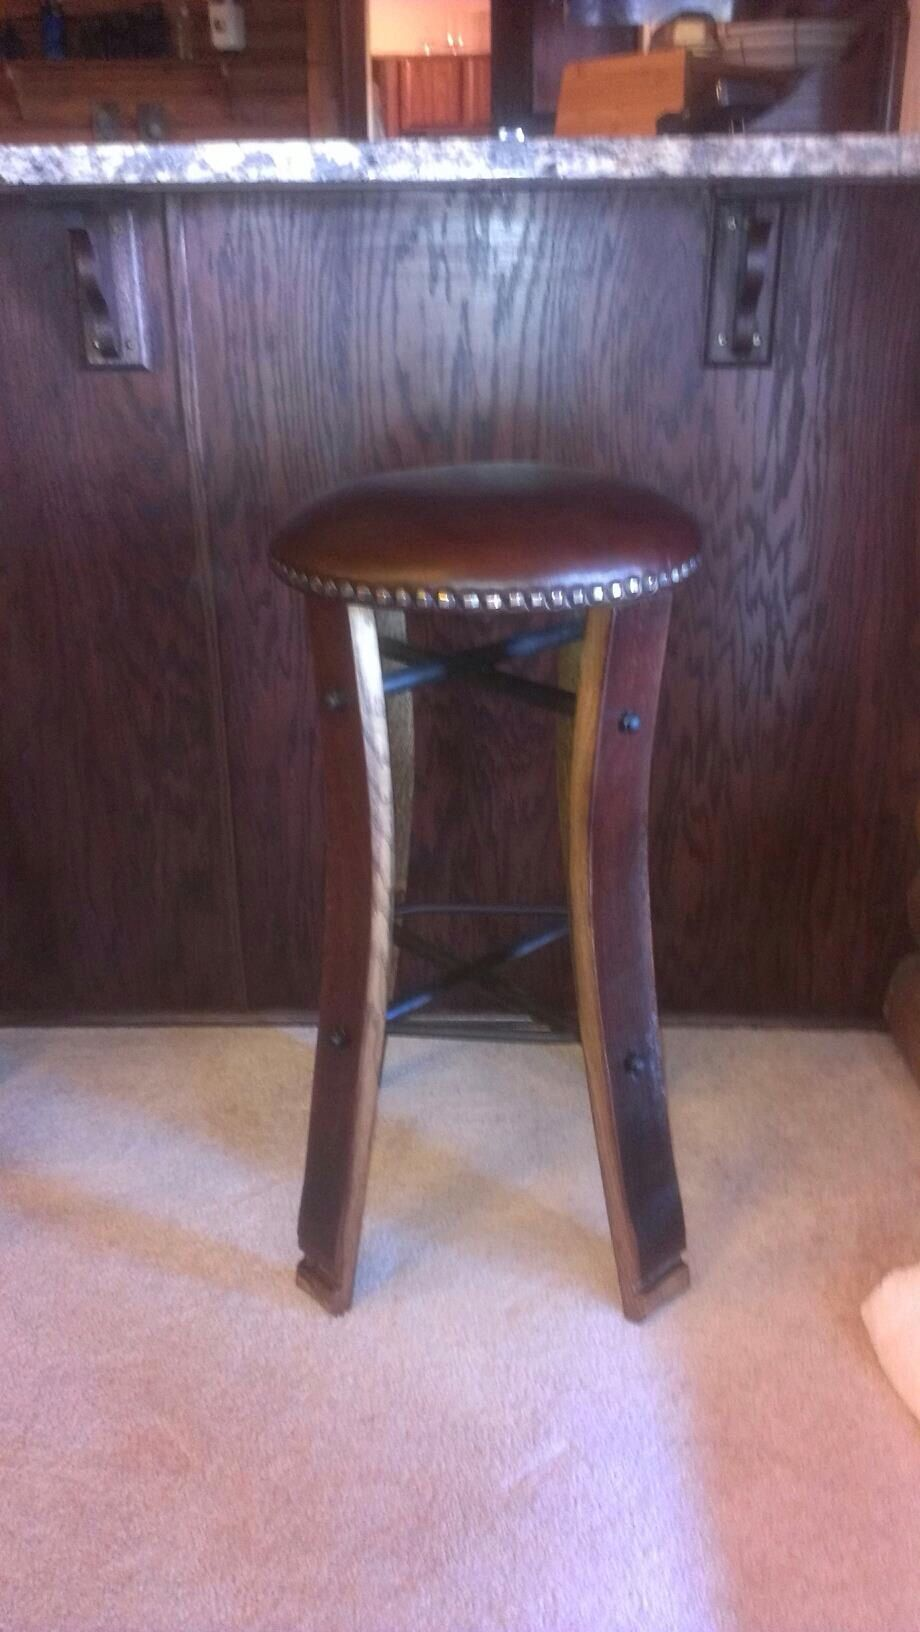 One Of Our Barrel Stave Bar Stools This One Has A Round Top That Has Been Upholstered In Leather Barrel Furniture Wine Barrel Furniture Home Decor